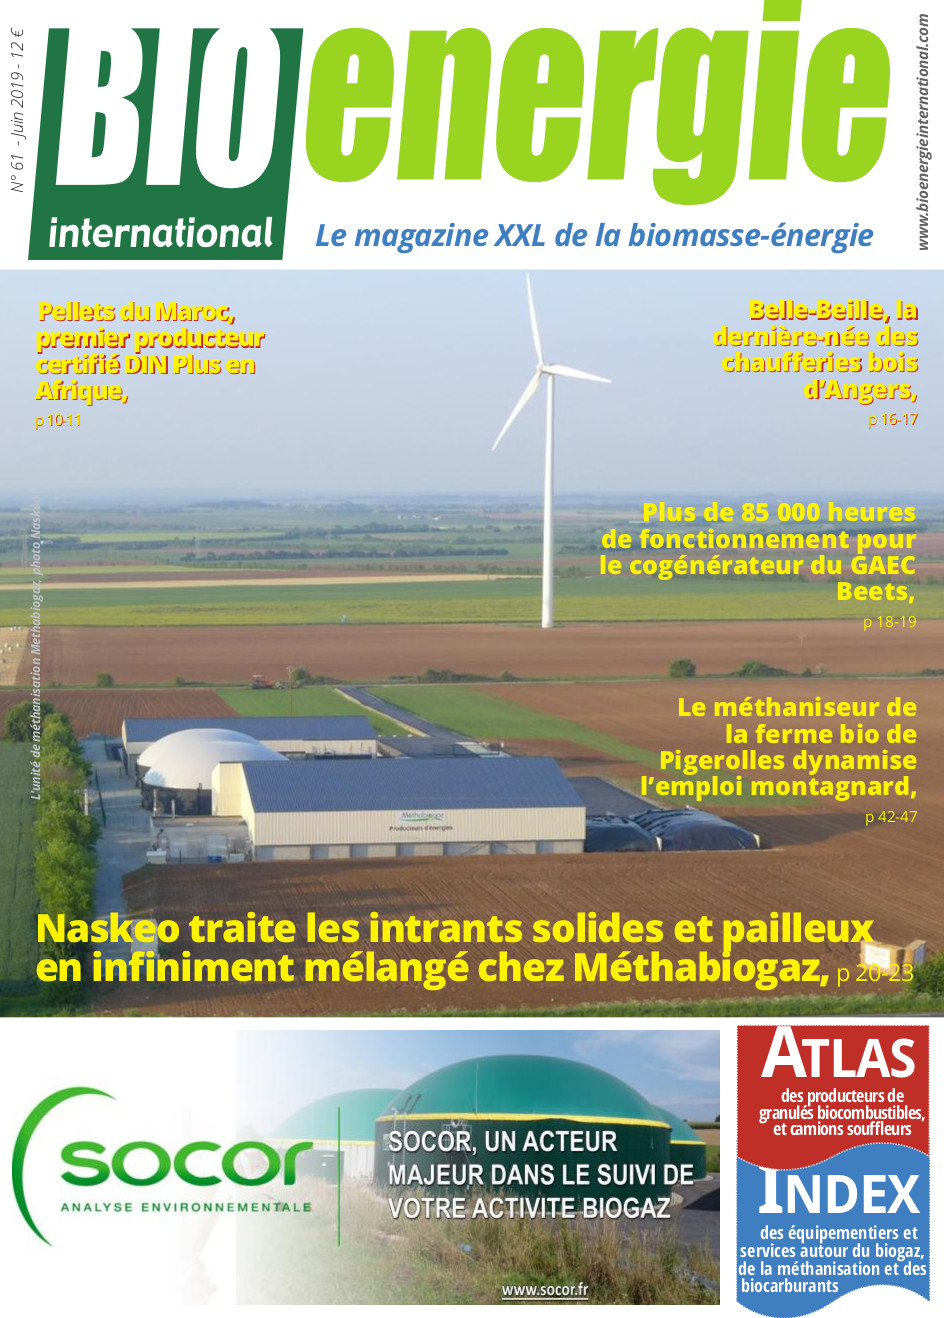 Bioénergie International n°61 – Juin 2019